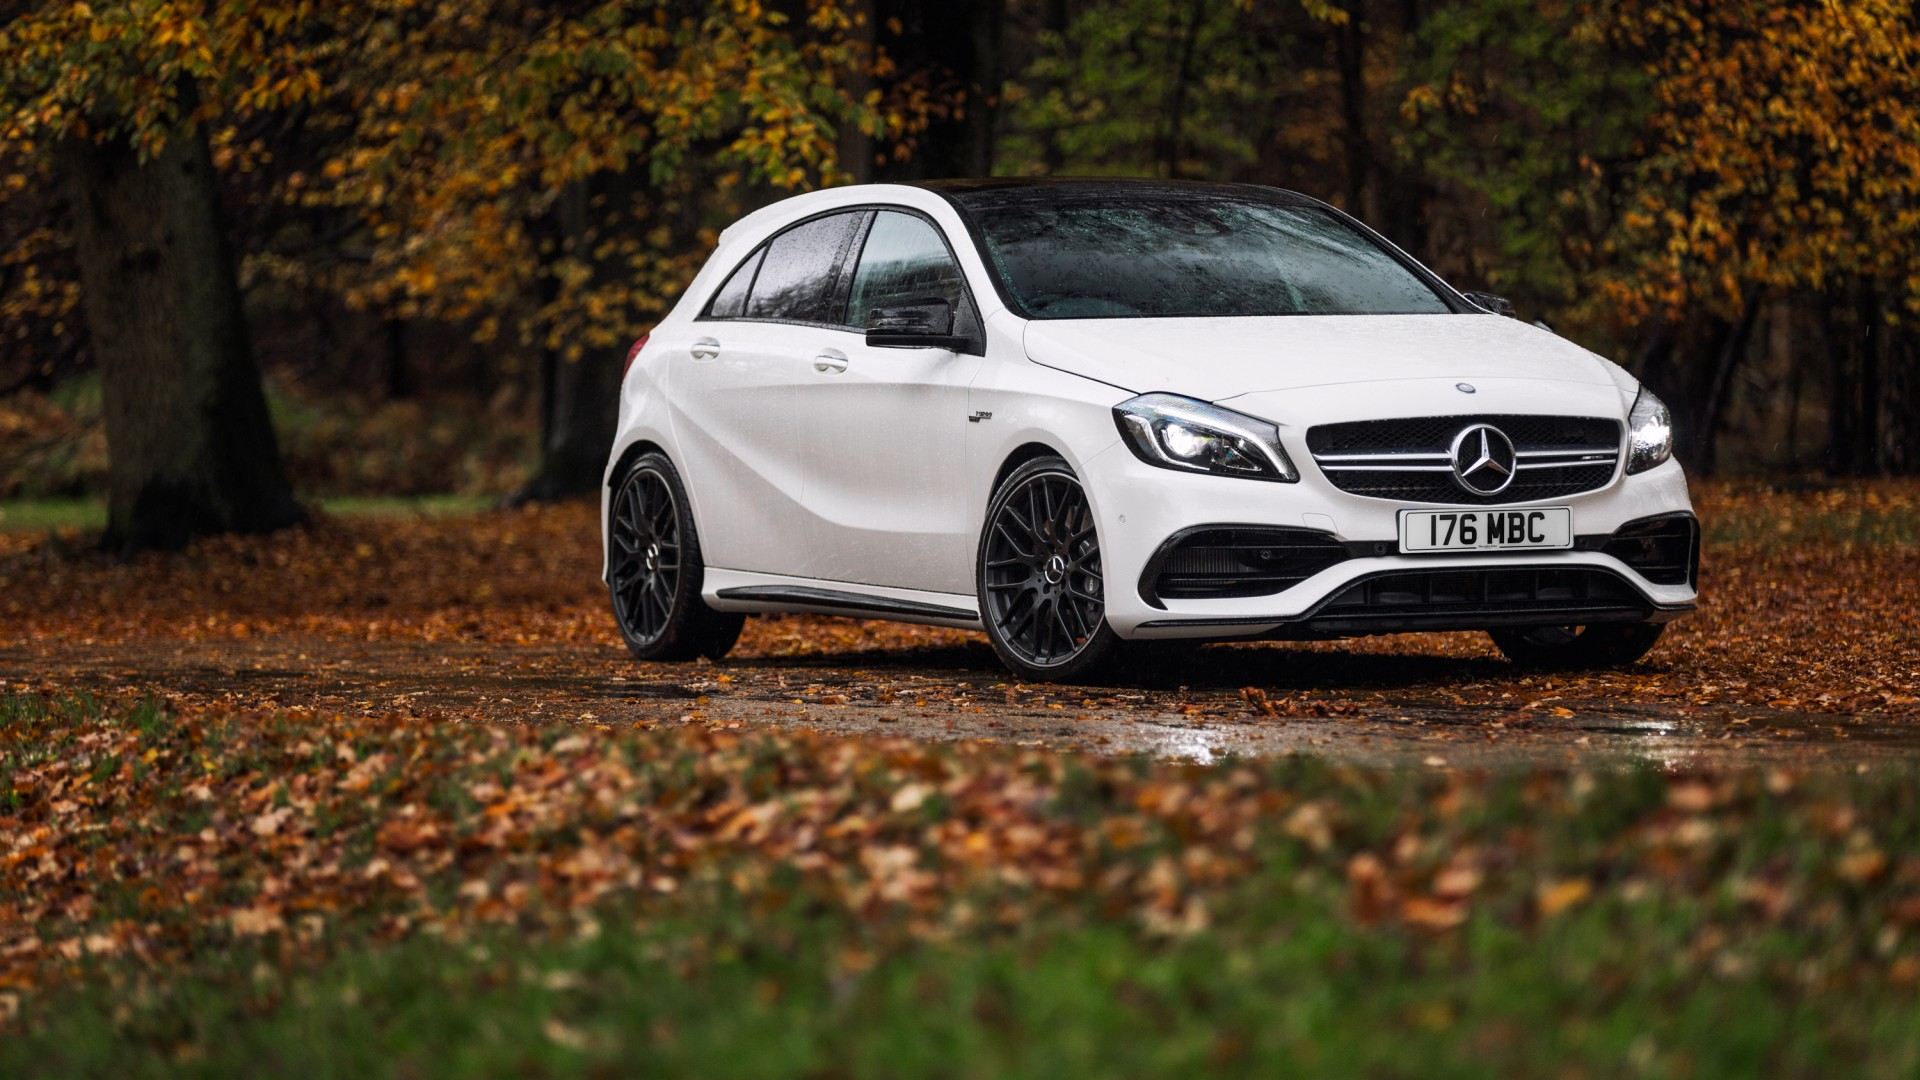 The Mercedes A Class AMG is a brilliant hot hatch | Square Mile